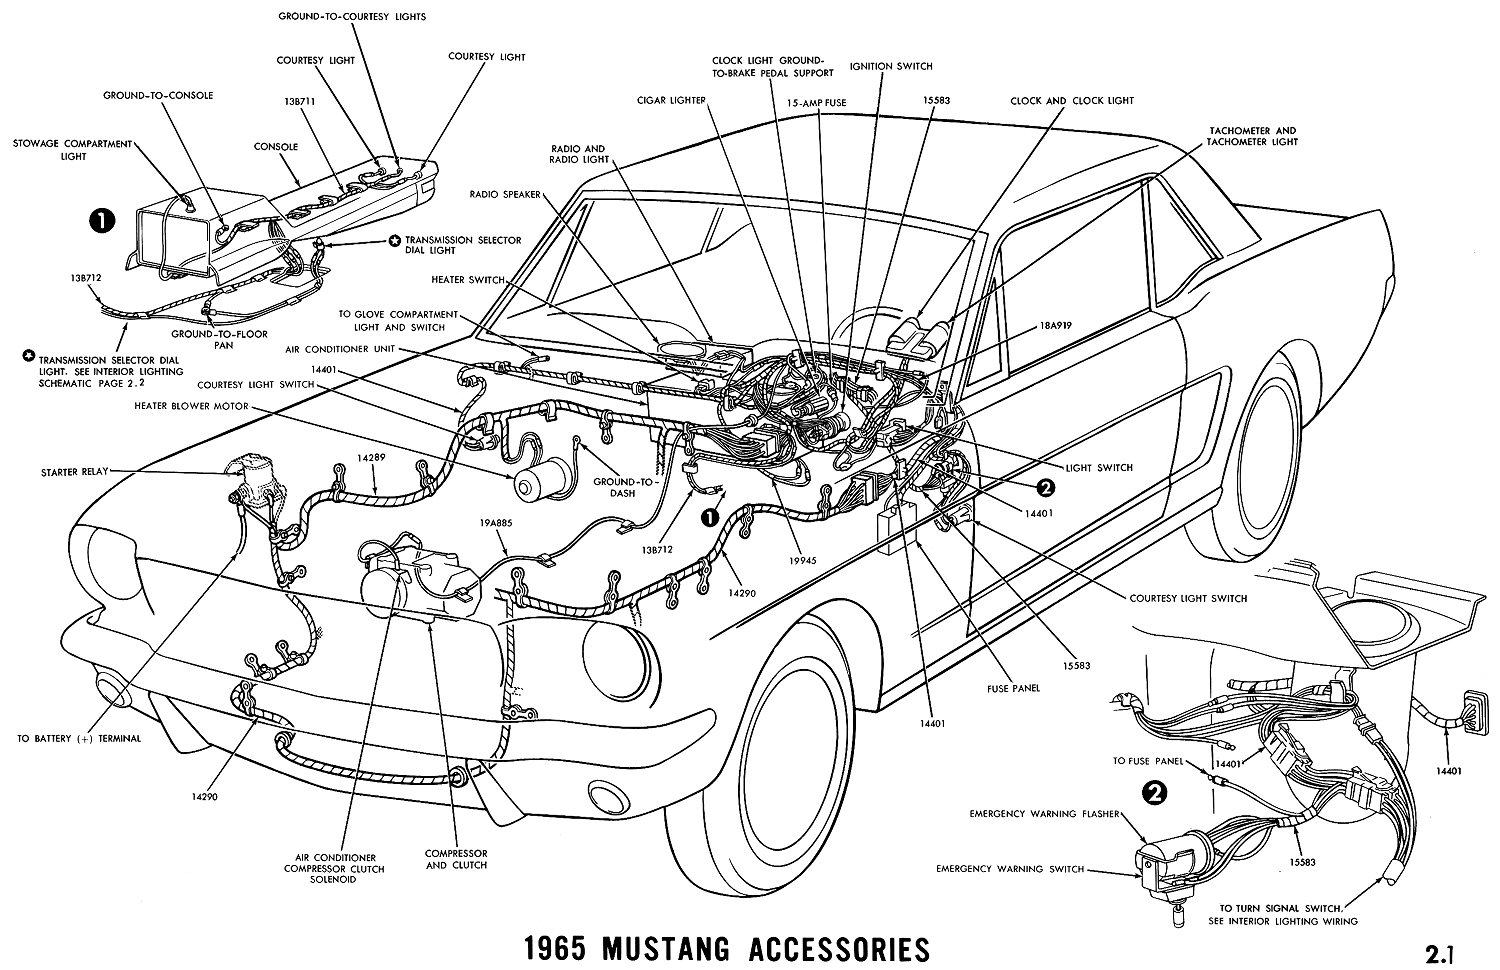 1965h 1965 mustang wiring diagrams average joe restoration 67 mustang wiring diagram at alyssarenee.co